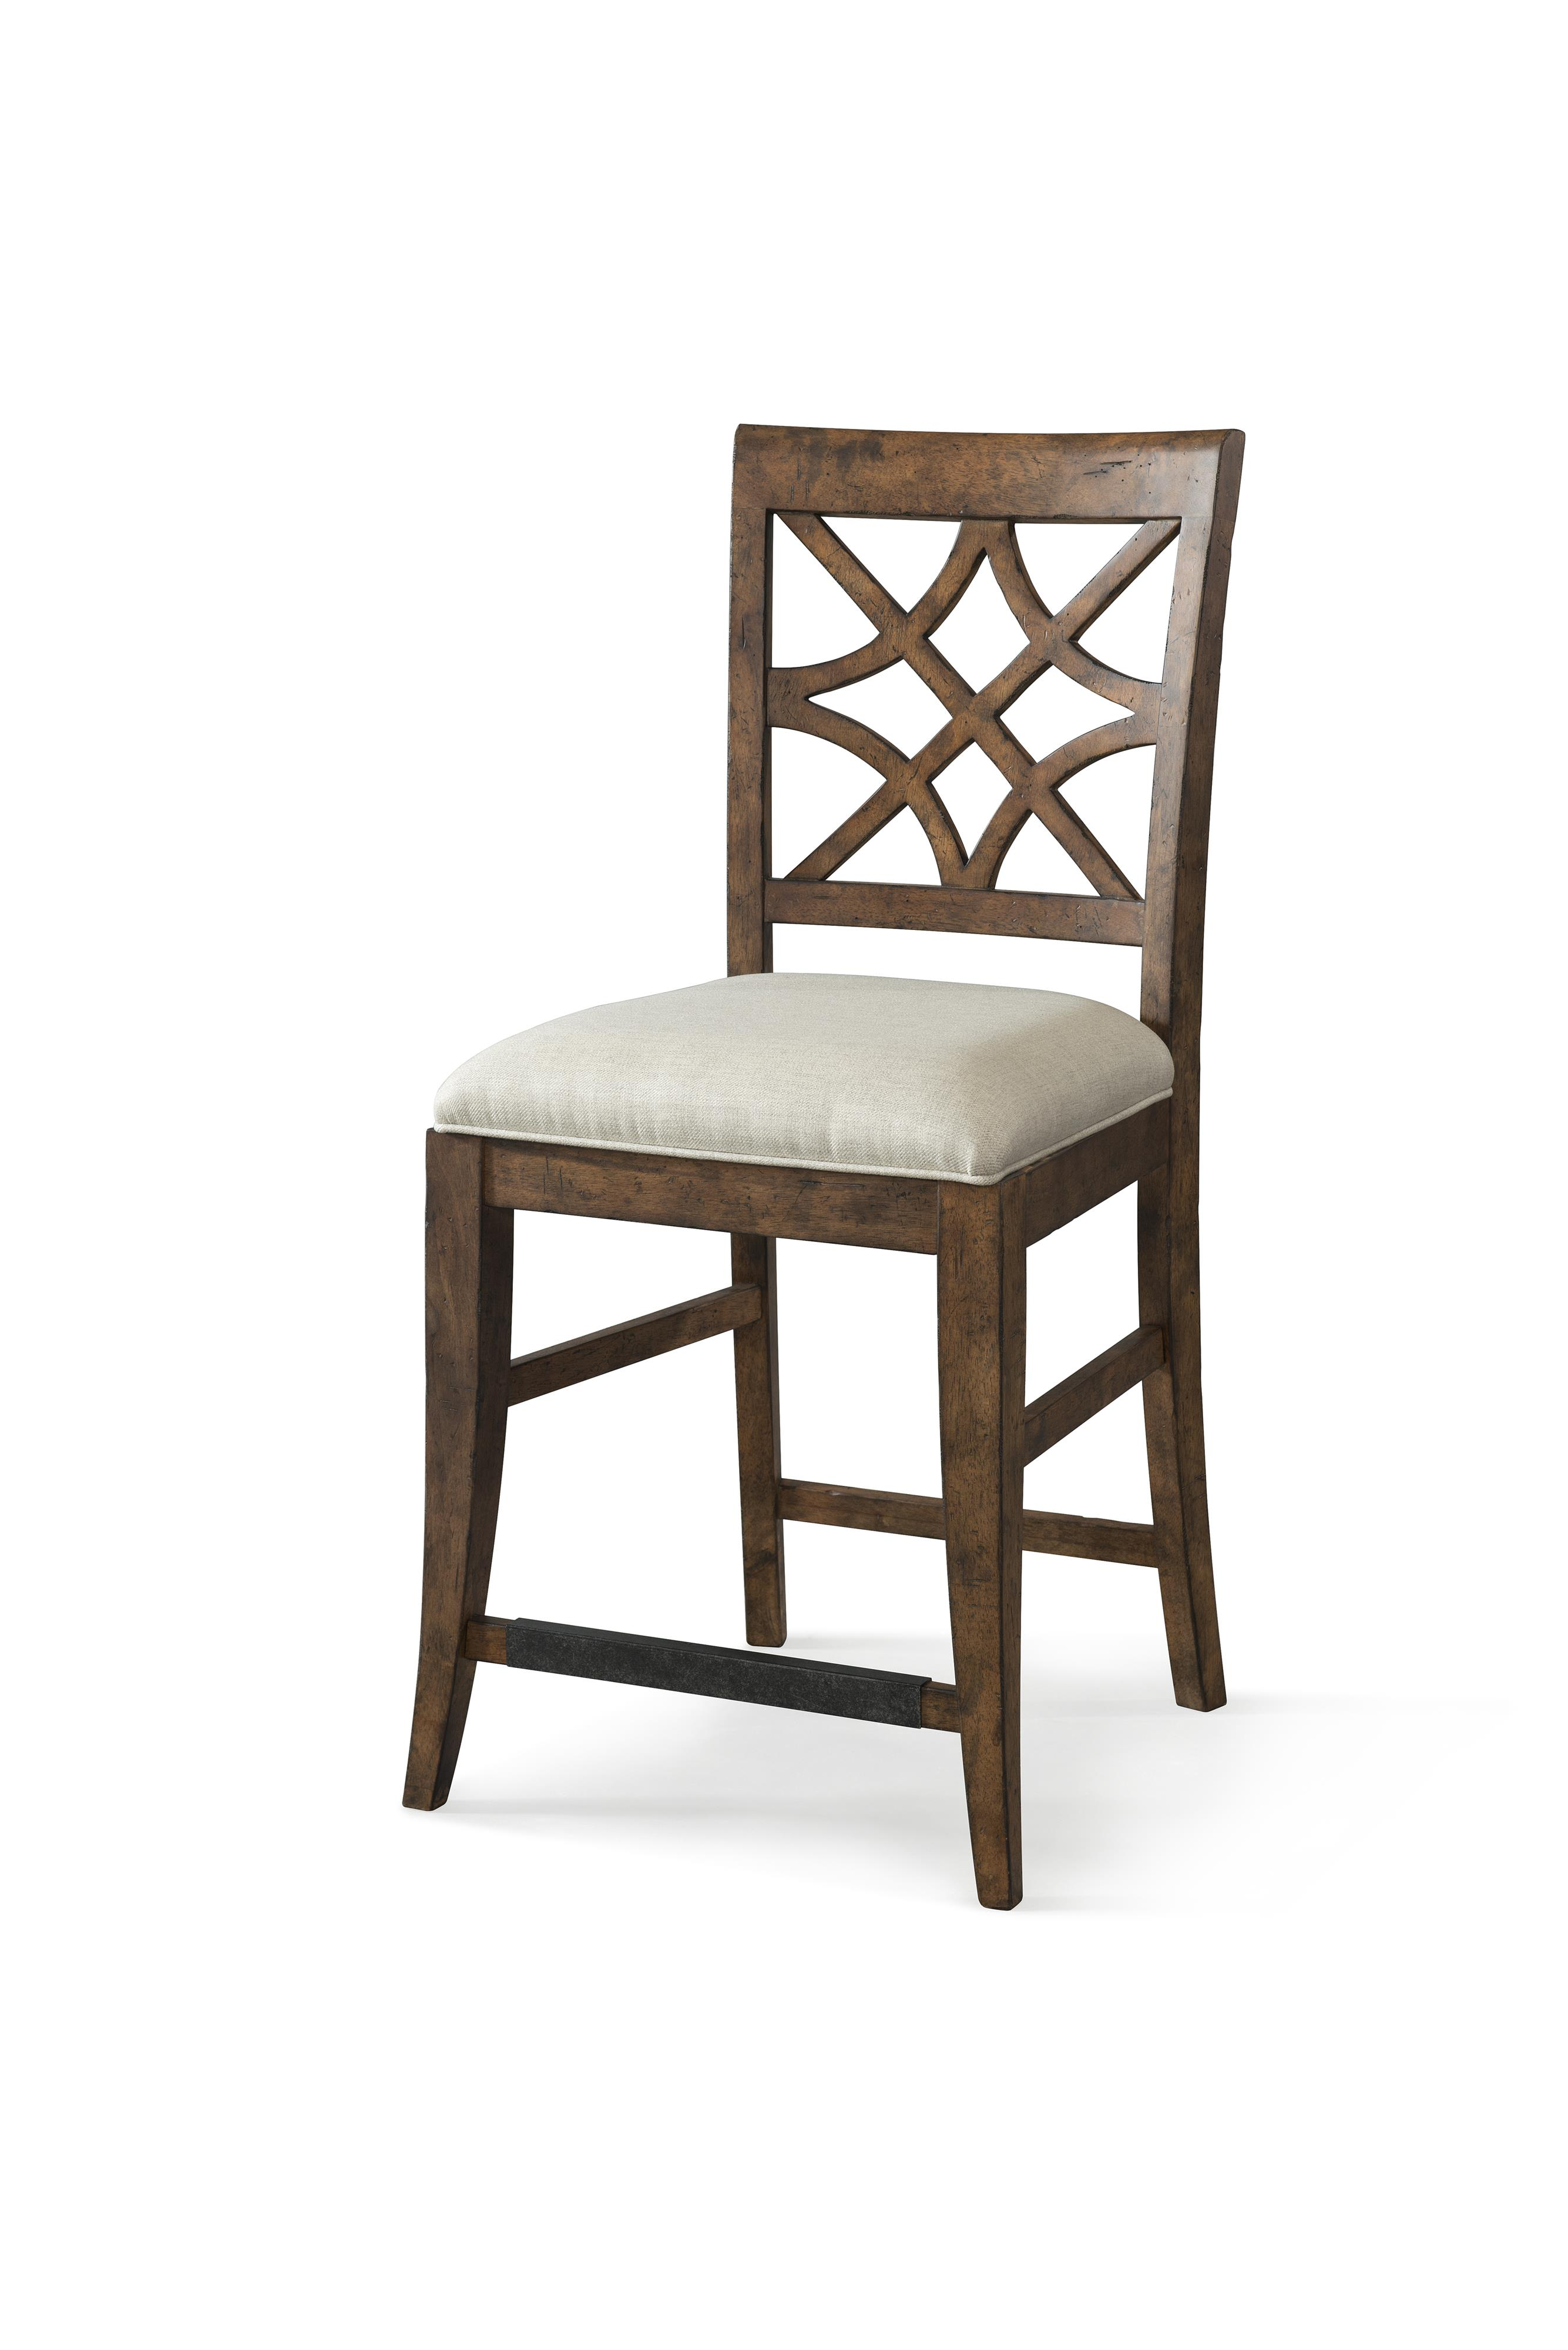 Klaussner Trisha Yearwood Home Nashville Counter Height Chair Homeworld Furniture Bar Stools